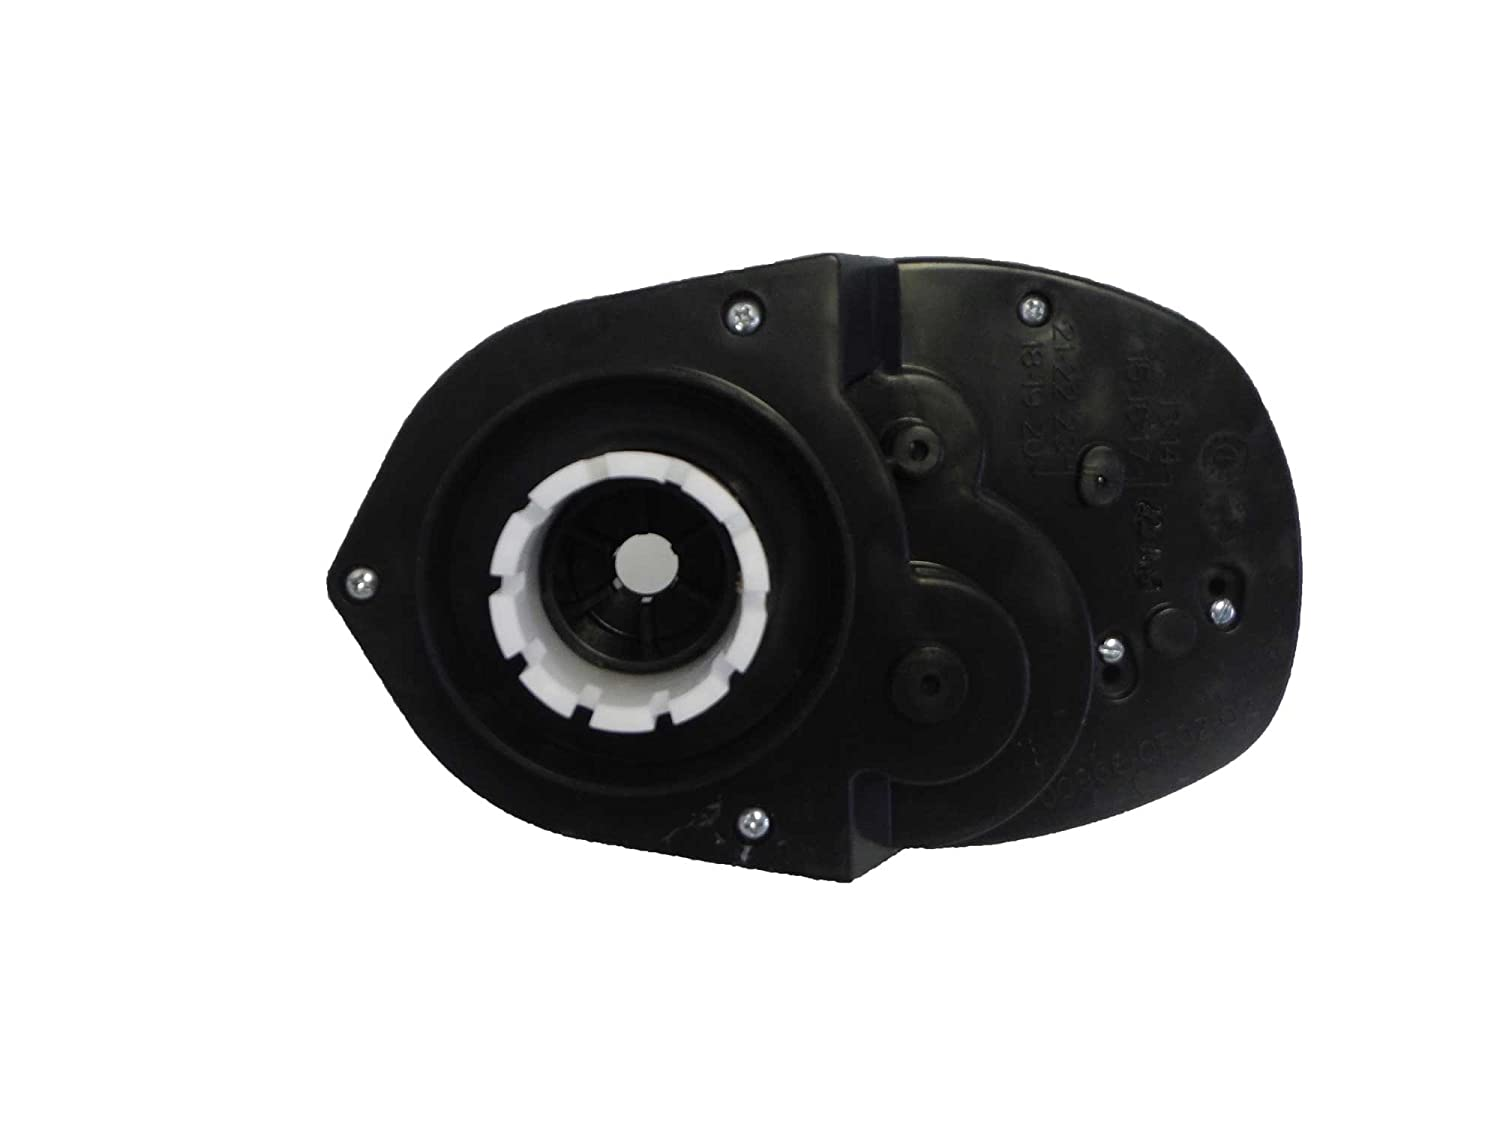 POWER WHEELS JEEP HURRICANE 7R GEARBOX WITH 15 TOOTH MOTOR 00968-2934